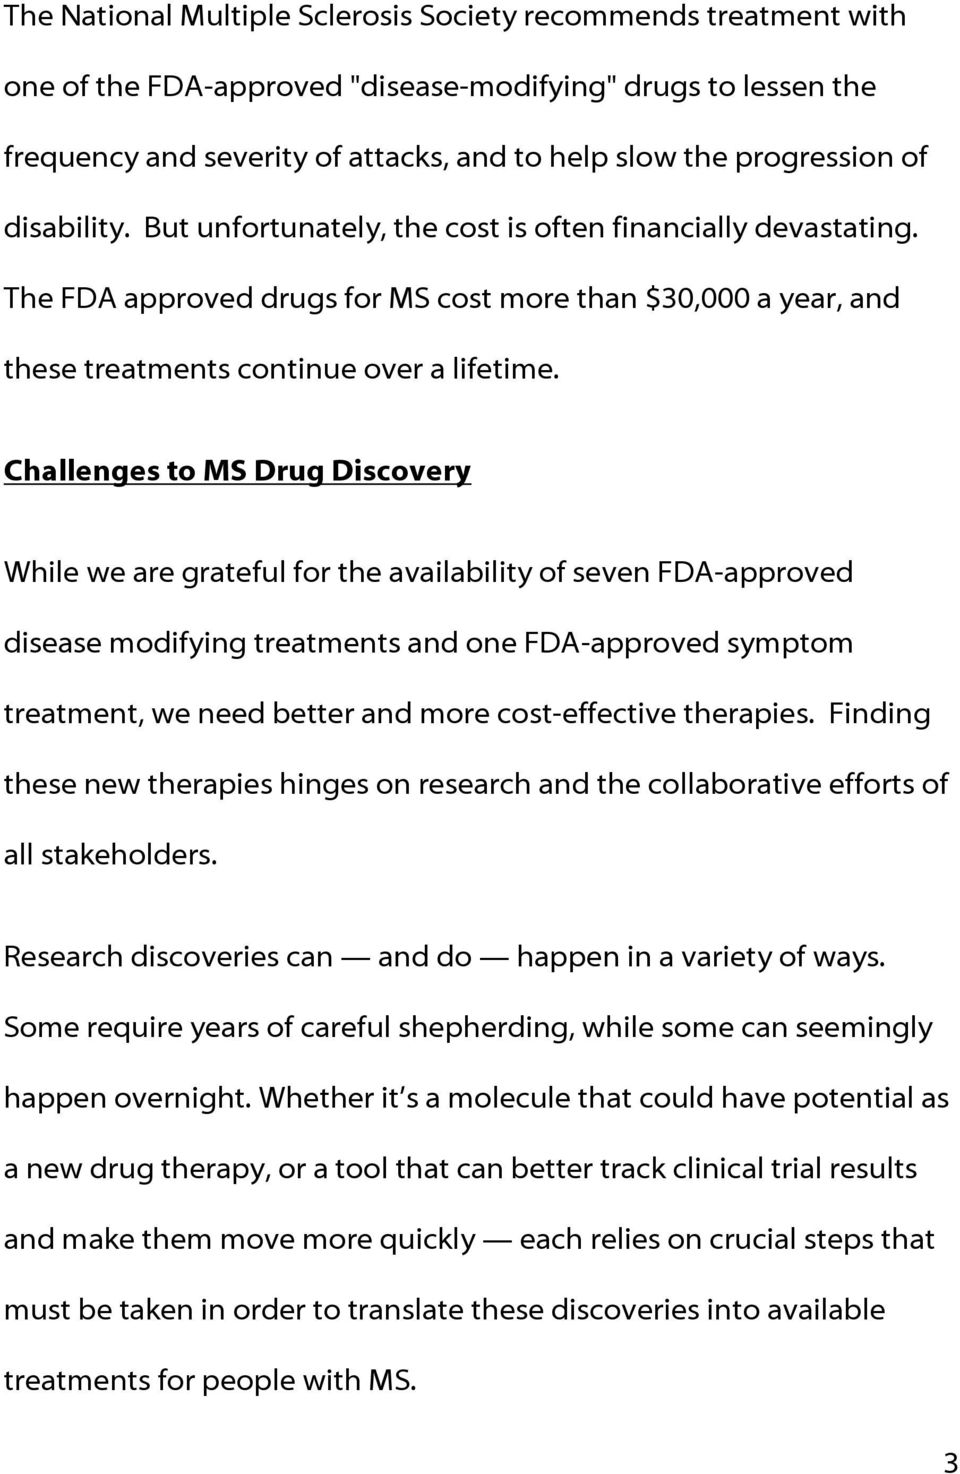 Challenges to MS Drug Discovery While we are grateful for the availability of seven FDA-approved disease modifying treatments and one FDA-approved symptom treatment, we need better and more